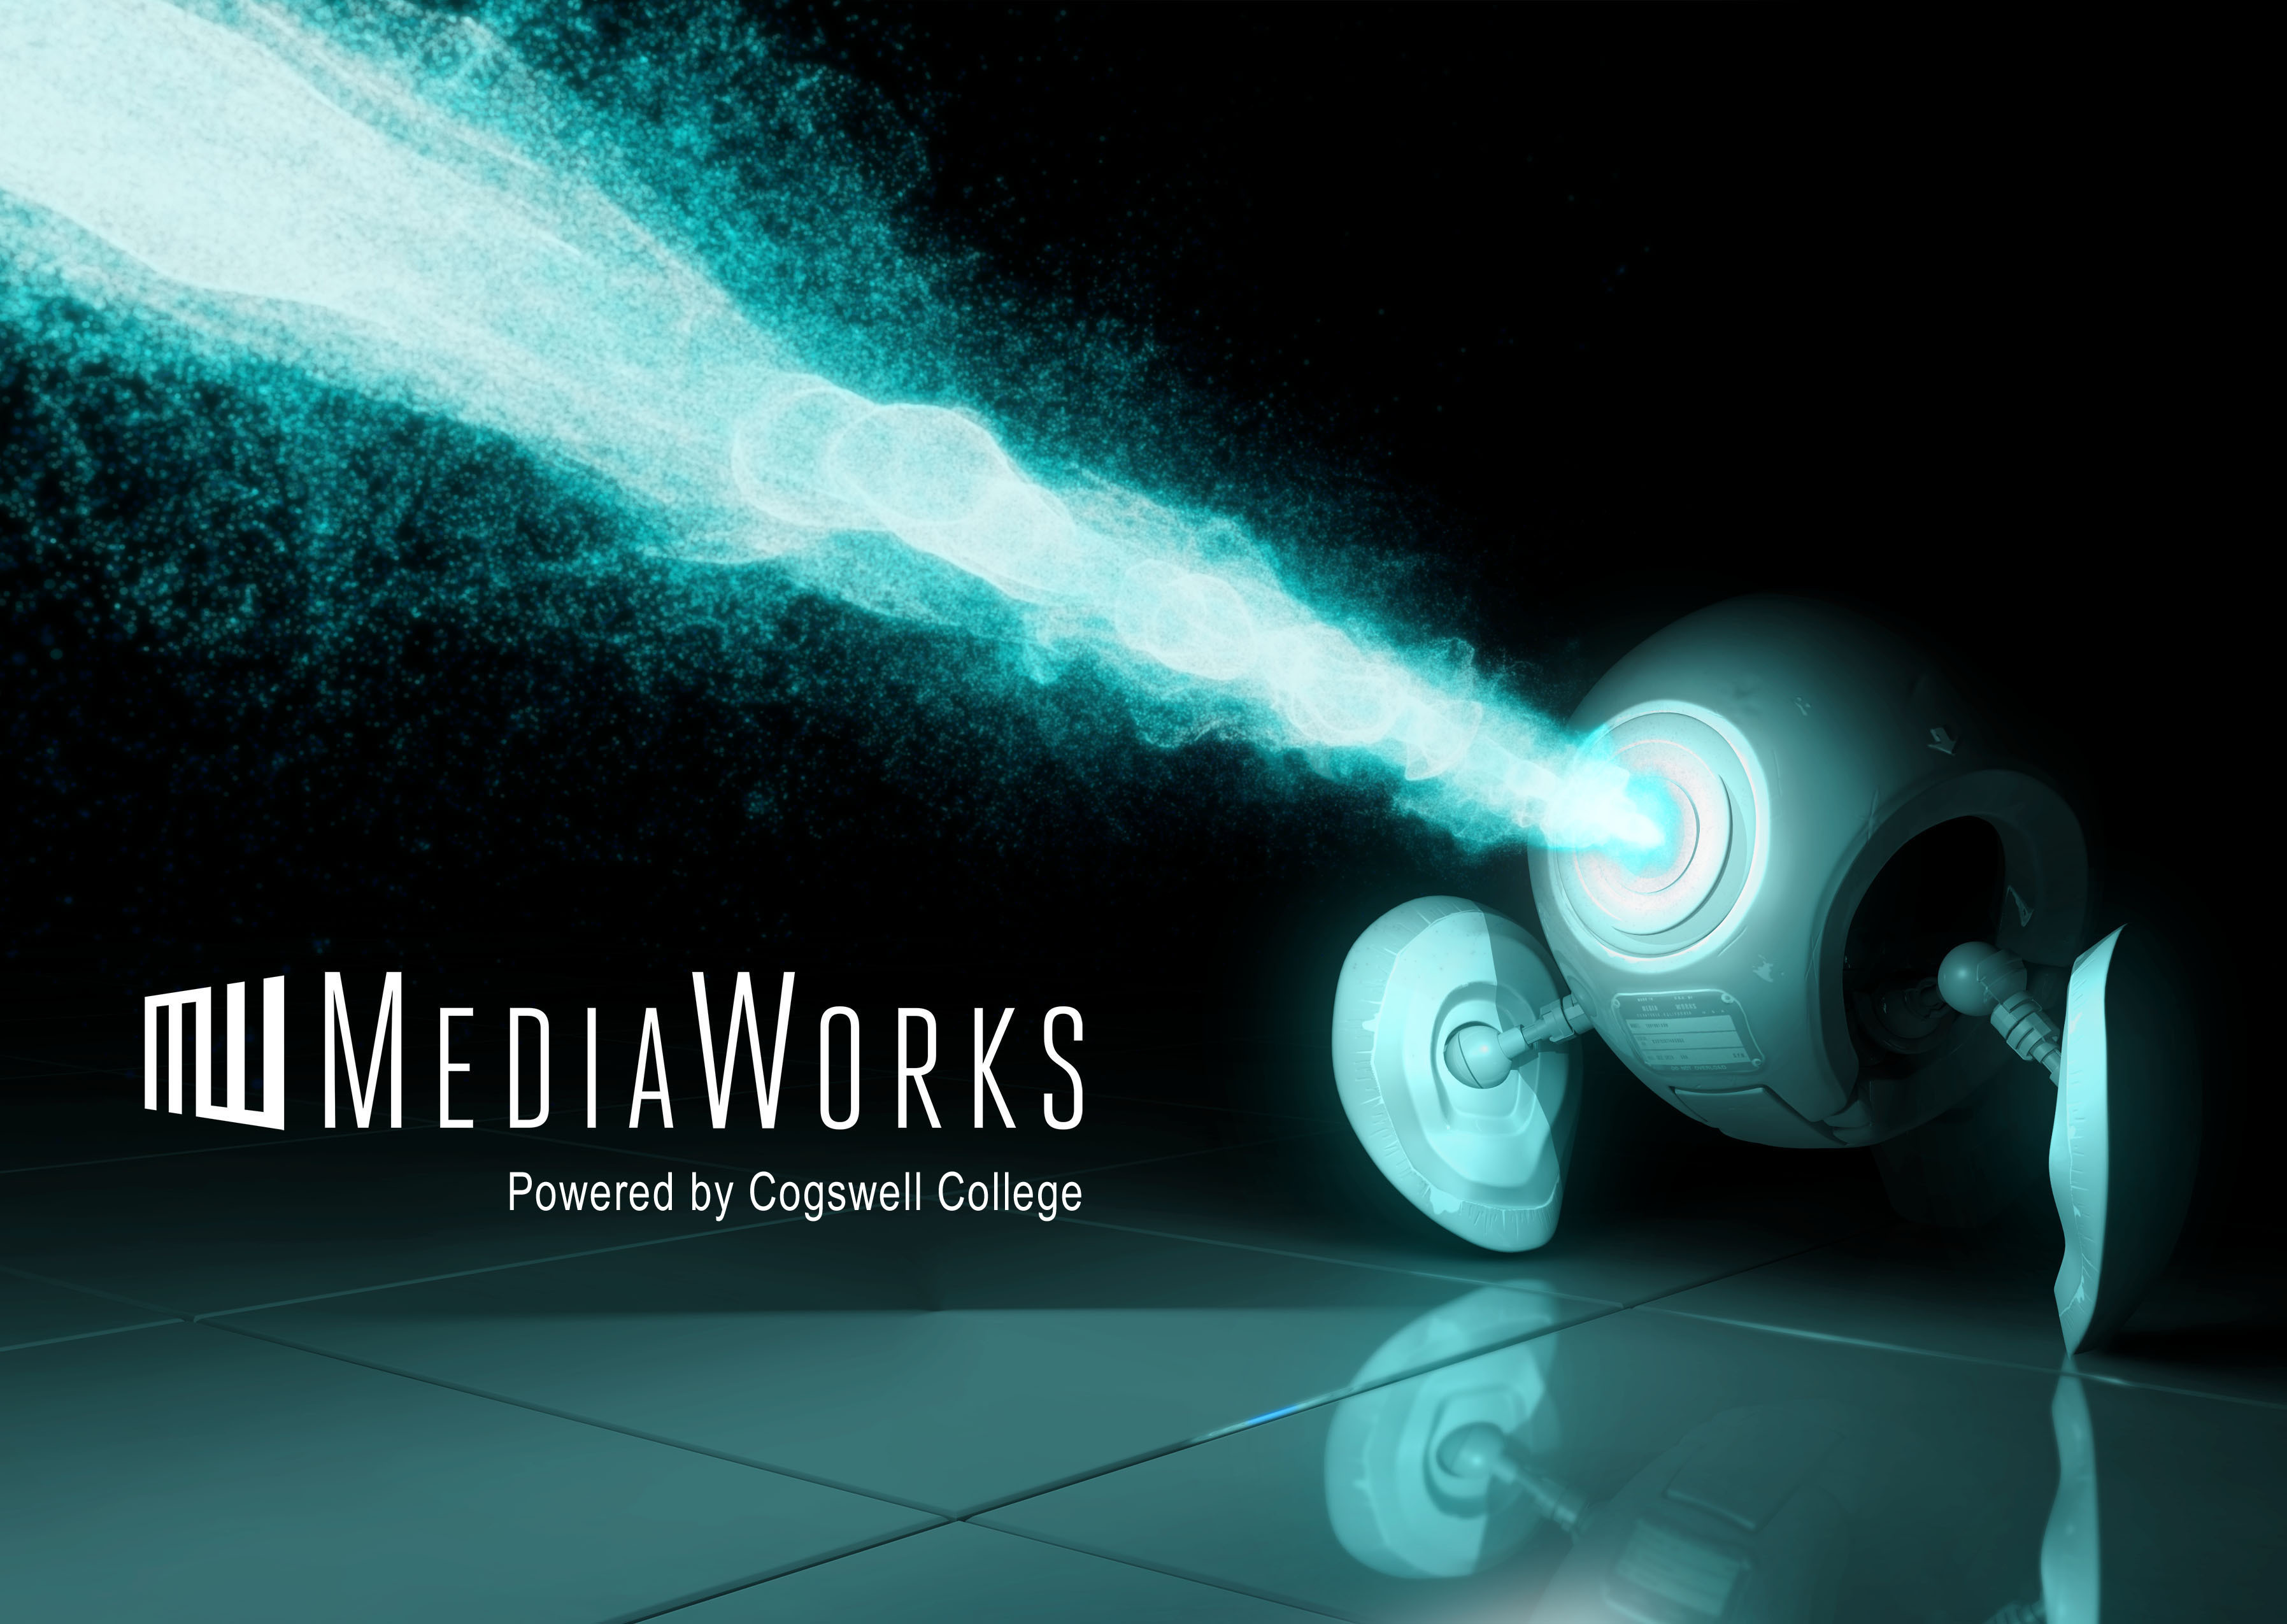 Cogswell College's MediaWorks Initiative Celebrates its First Year Anniversary of Producing AudioVisual Media for Real World Clients (Graphic: Business Wire)